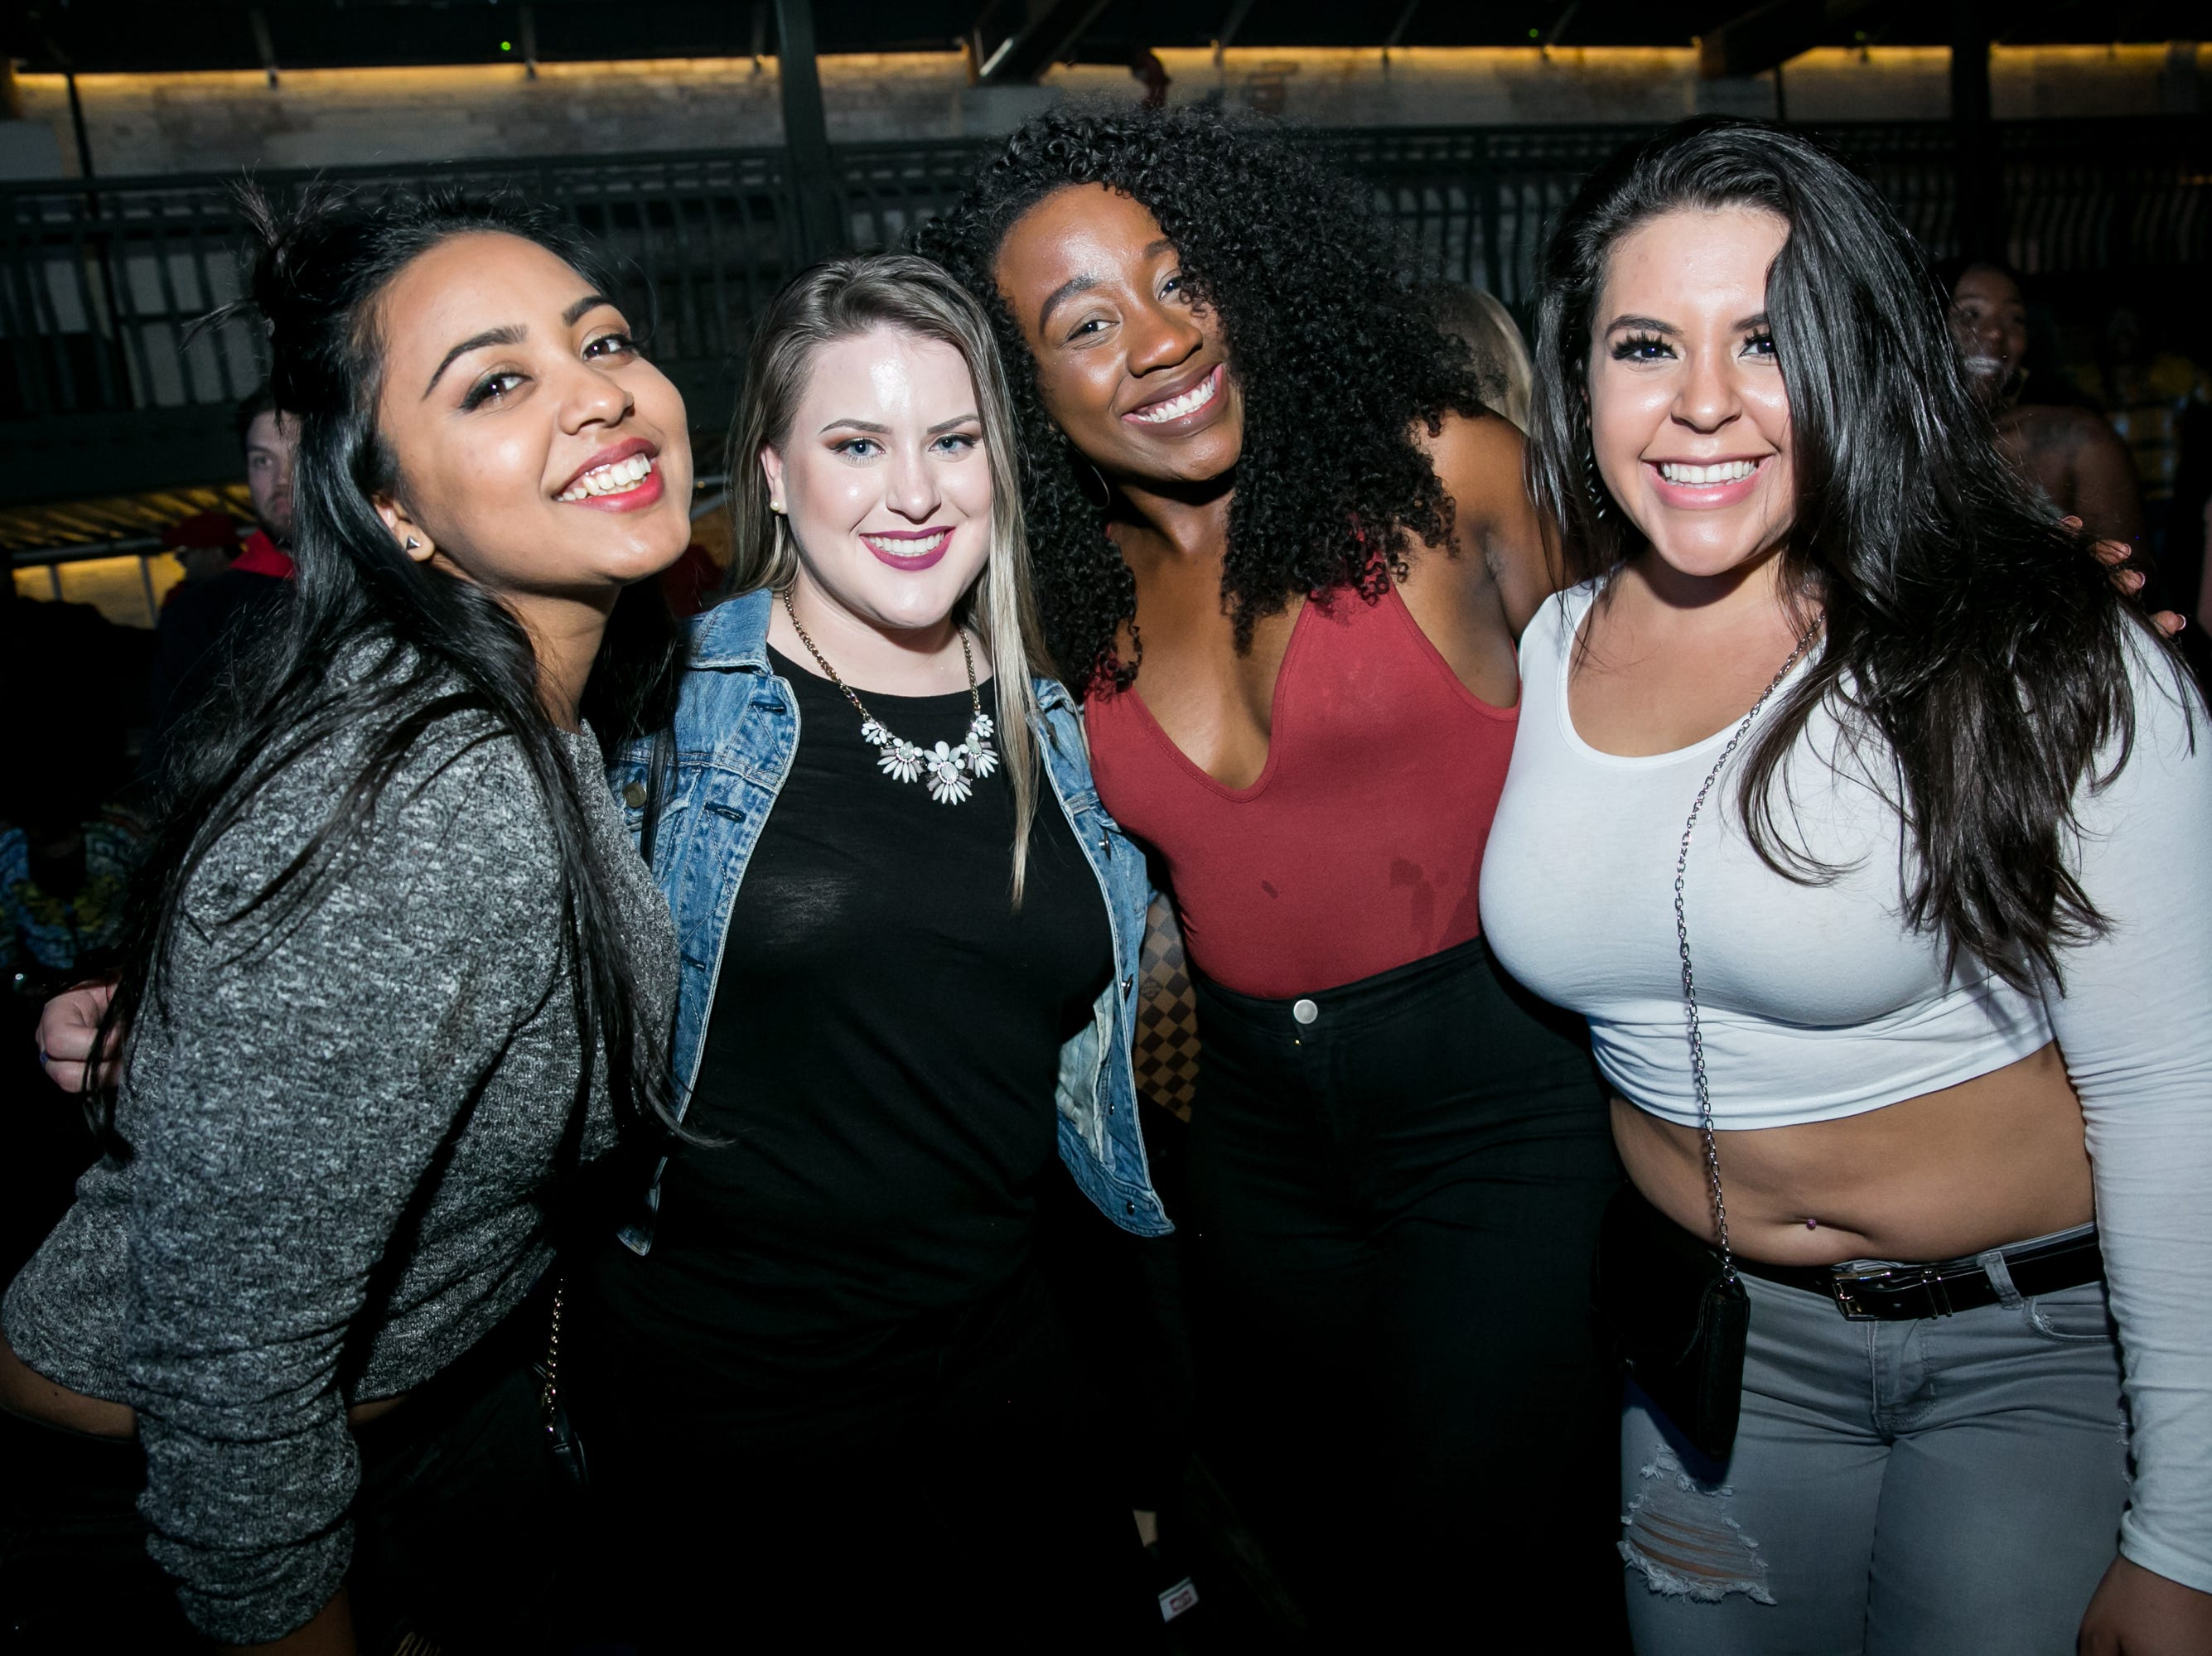 These fashionable ladies had a blast during Old School - 90's Hip Hop Dance Party at The Van Buren on Friday, November 30, 2018.